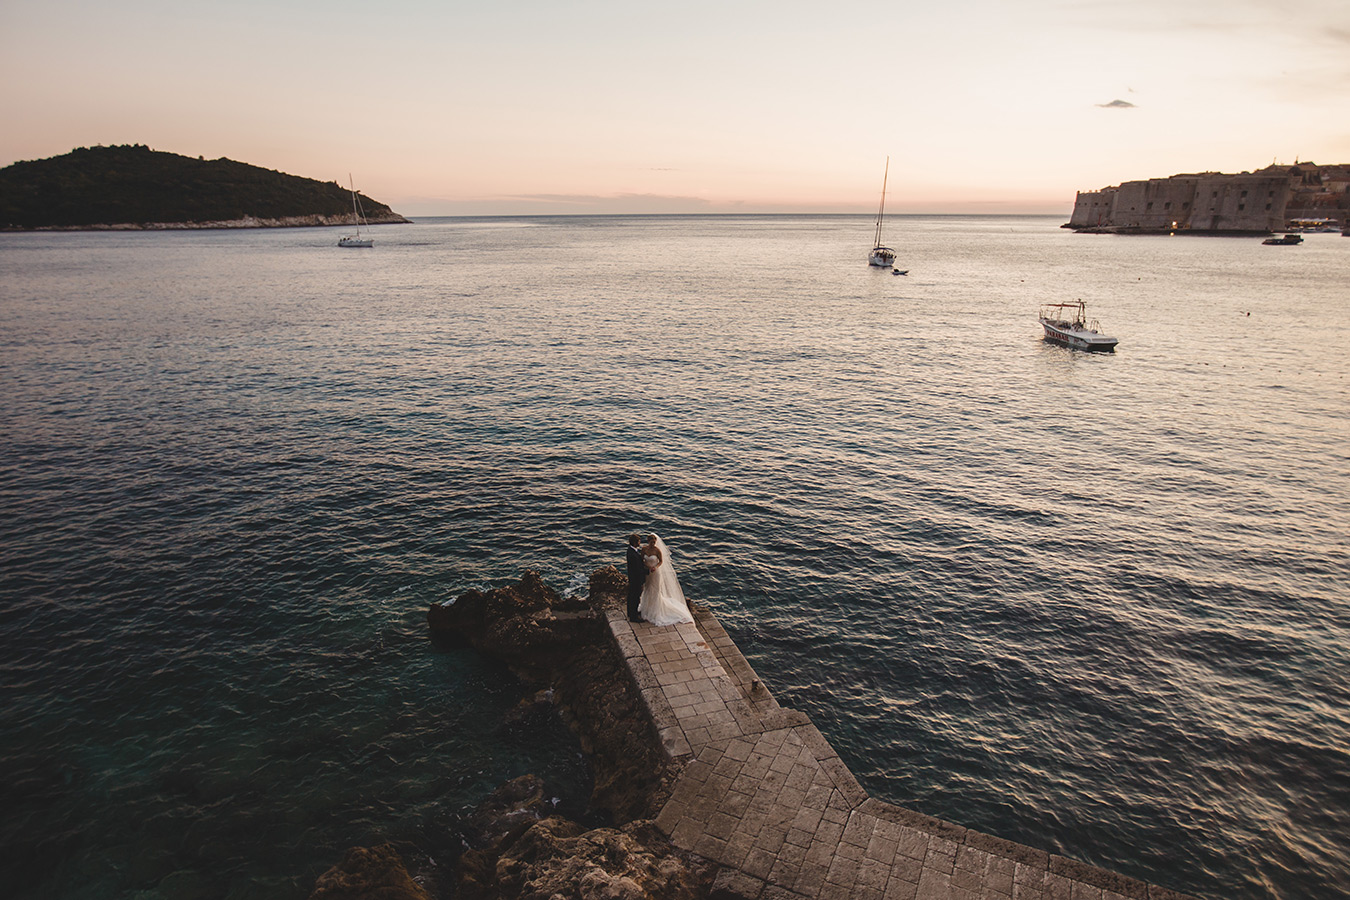 One of a set of images taken at this chic destination Wedding of Jenna & Nick. The stylish old town of Dubrovnik, Croatia.  The couple sit together by the water.  Photography by Matt Porteous